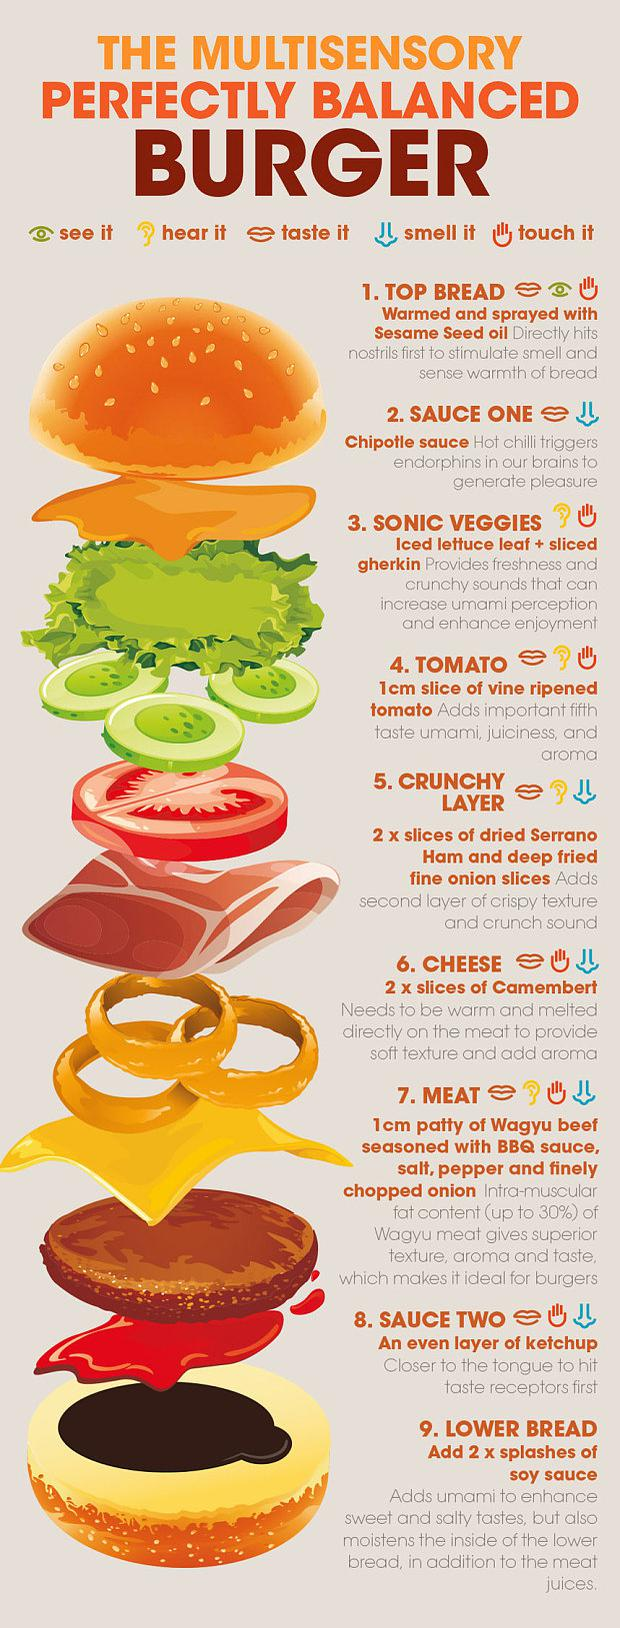 The perfect burger formula has been revealed.